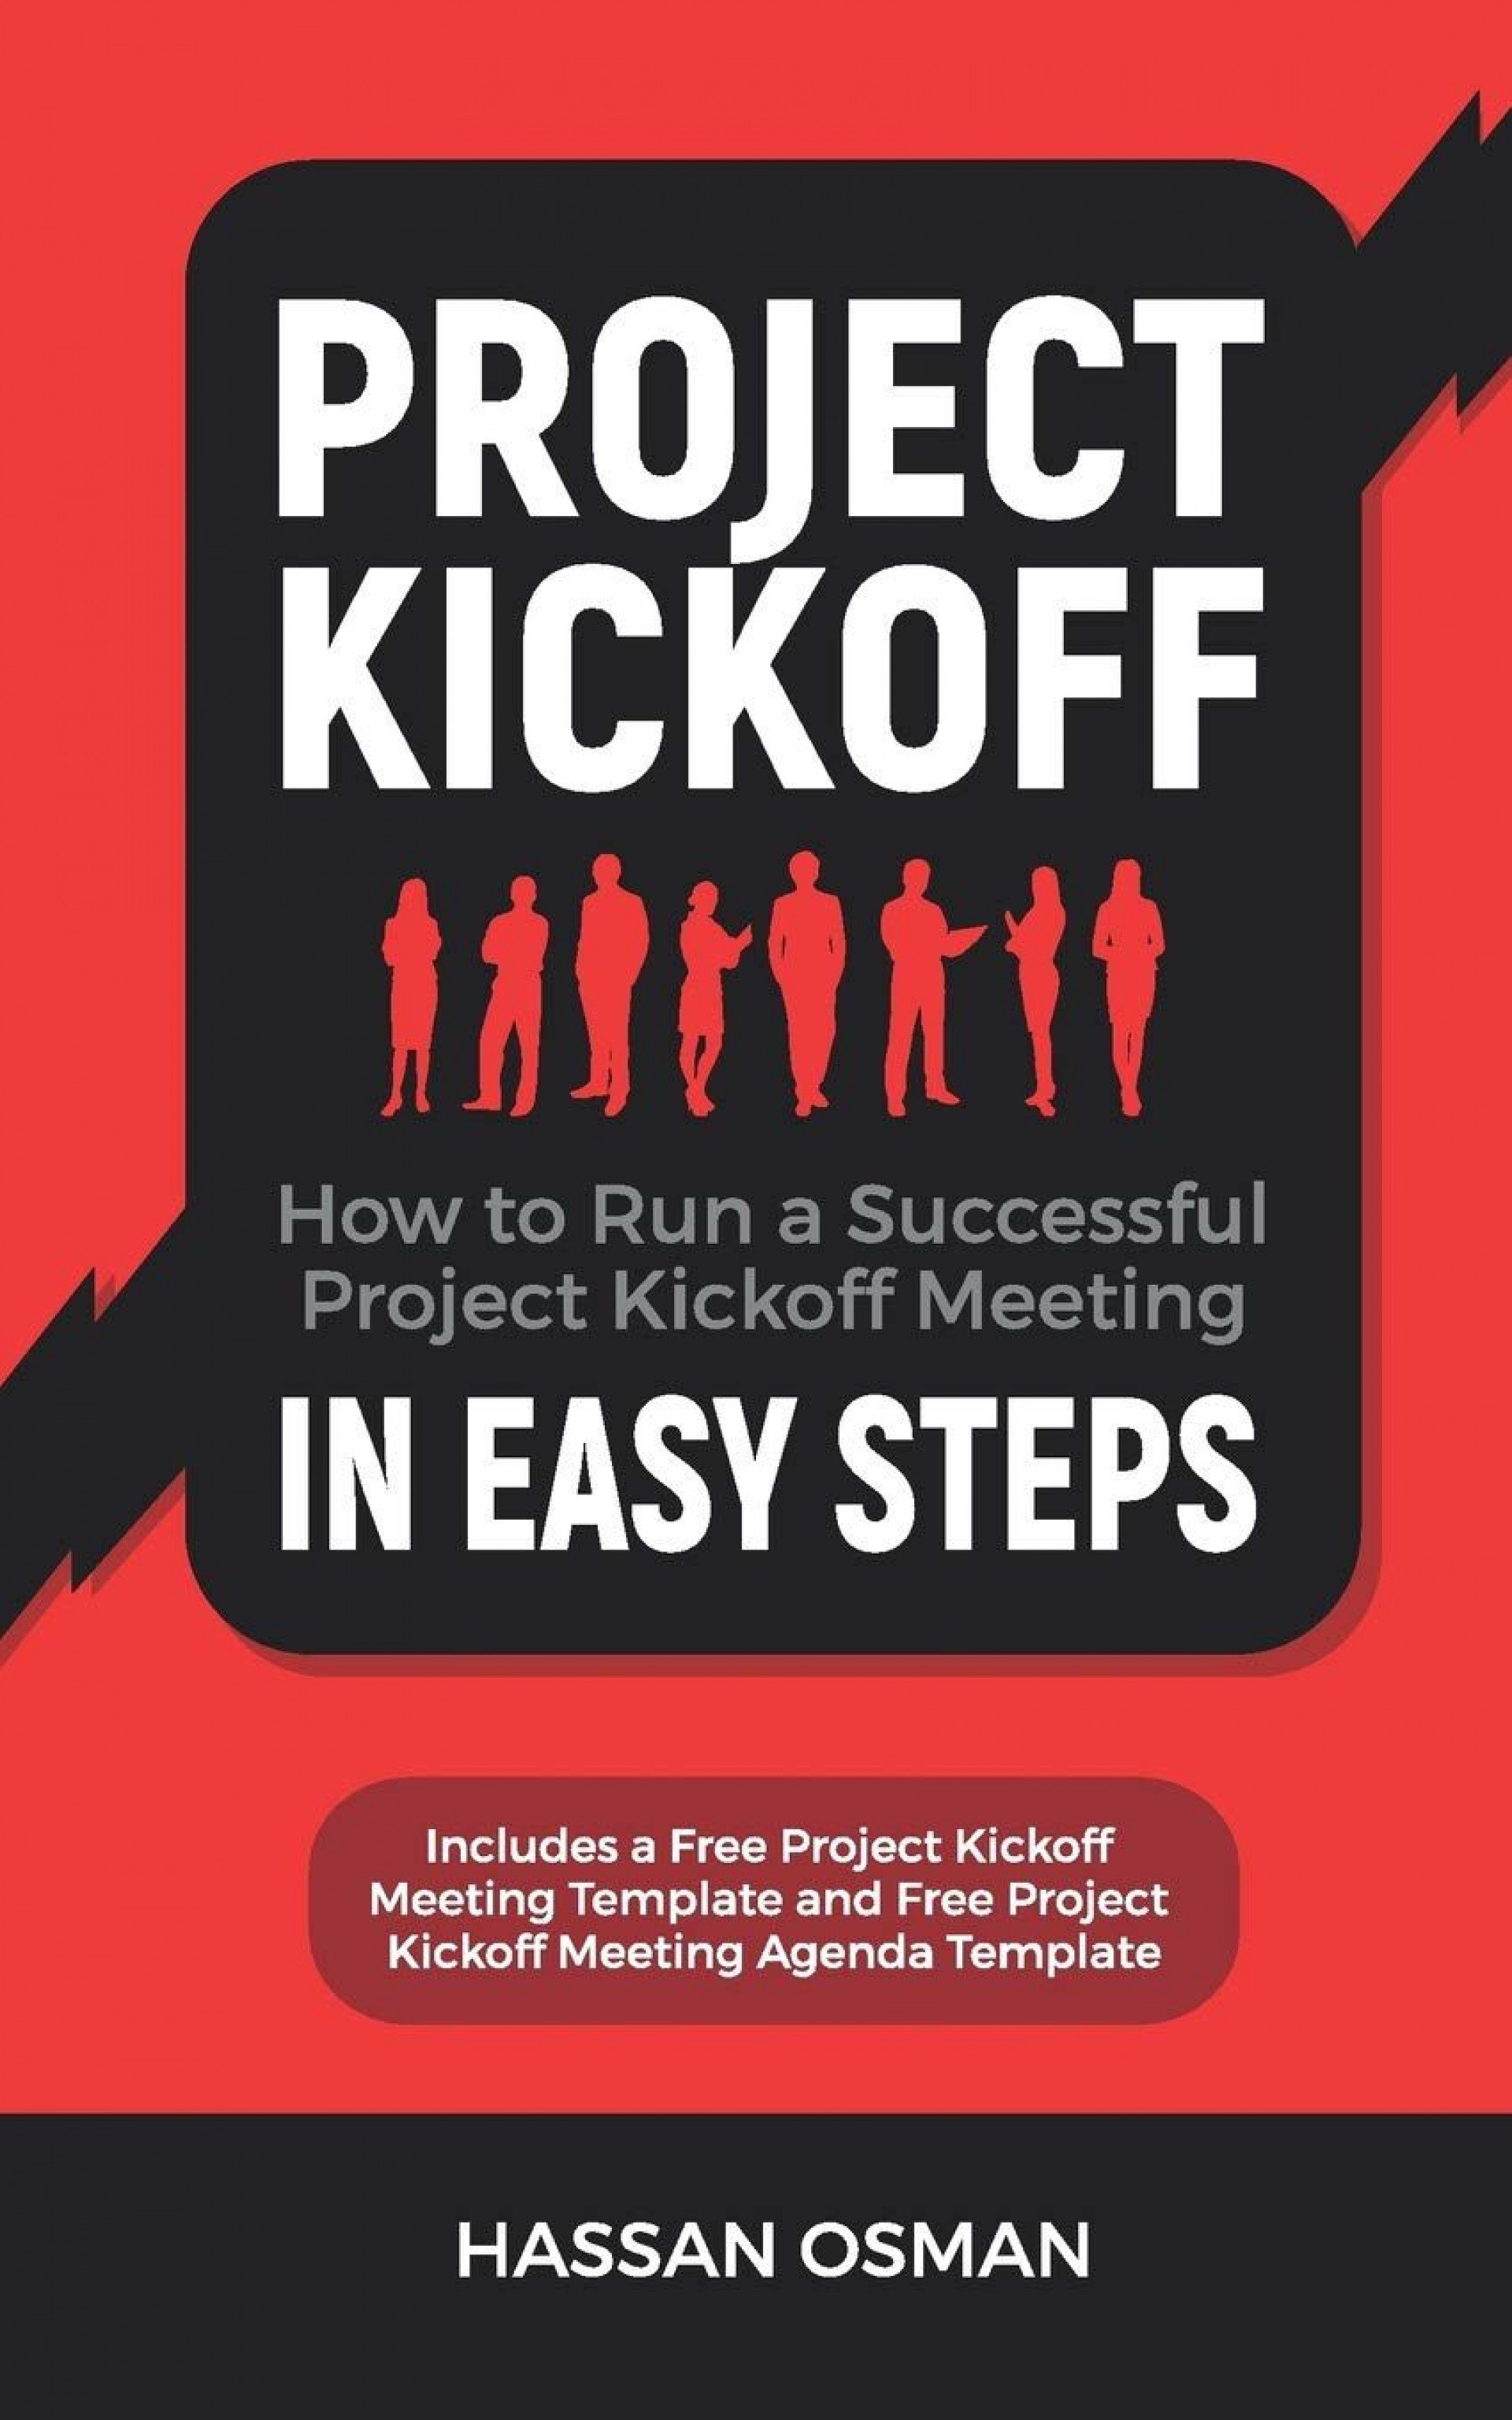 004 Impressive Project Kickoff Meeting Template Ppt Photo  Free Kick Off Management1920